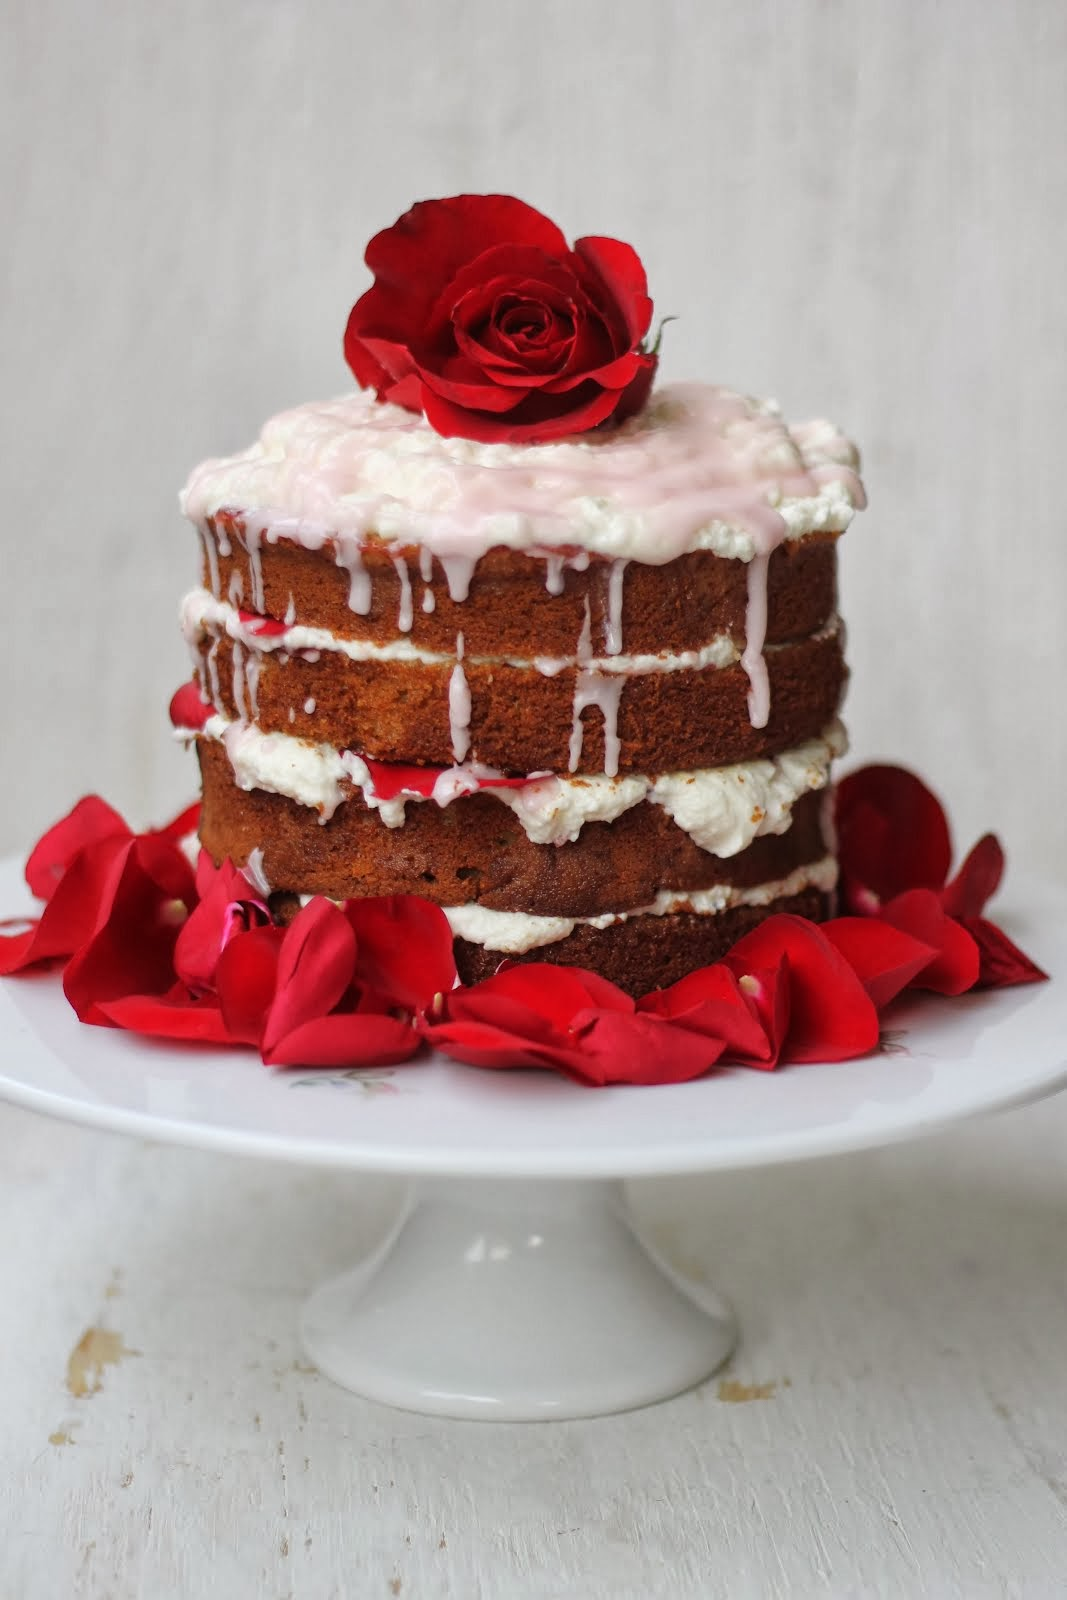 Rose Water Raspberry Tea Cake